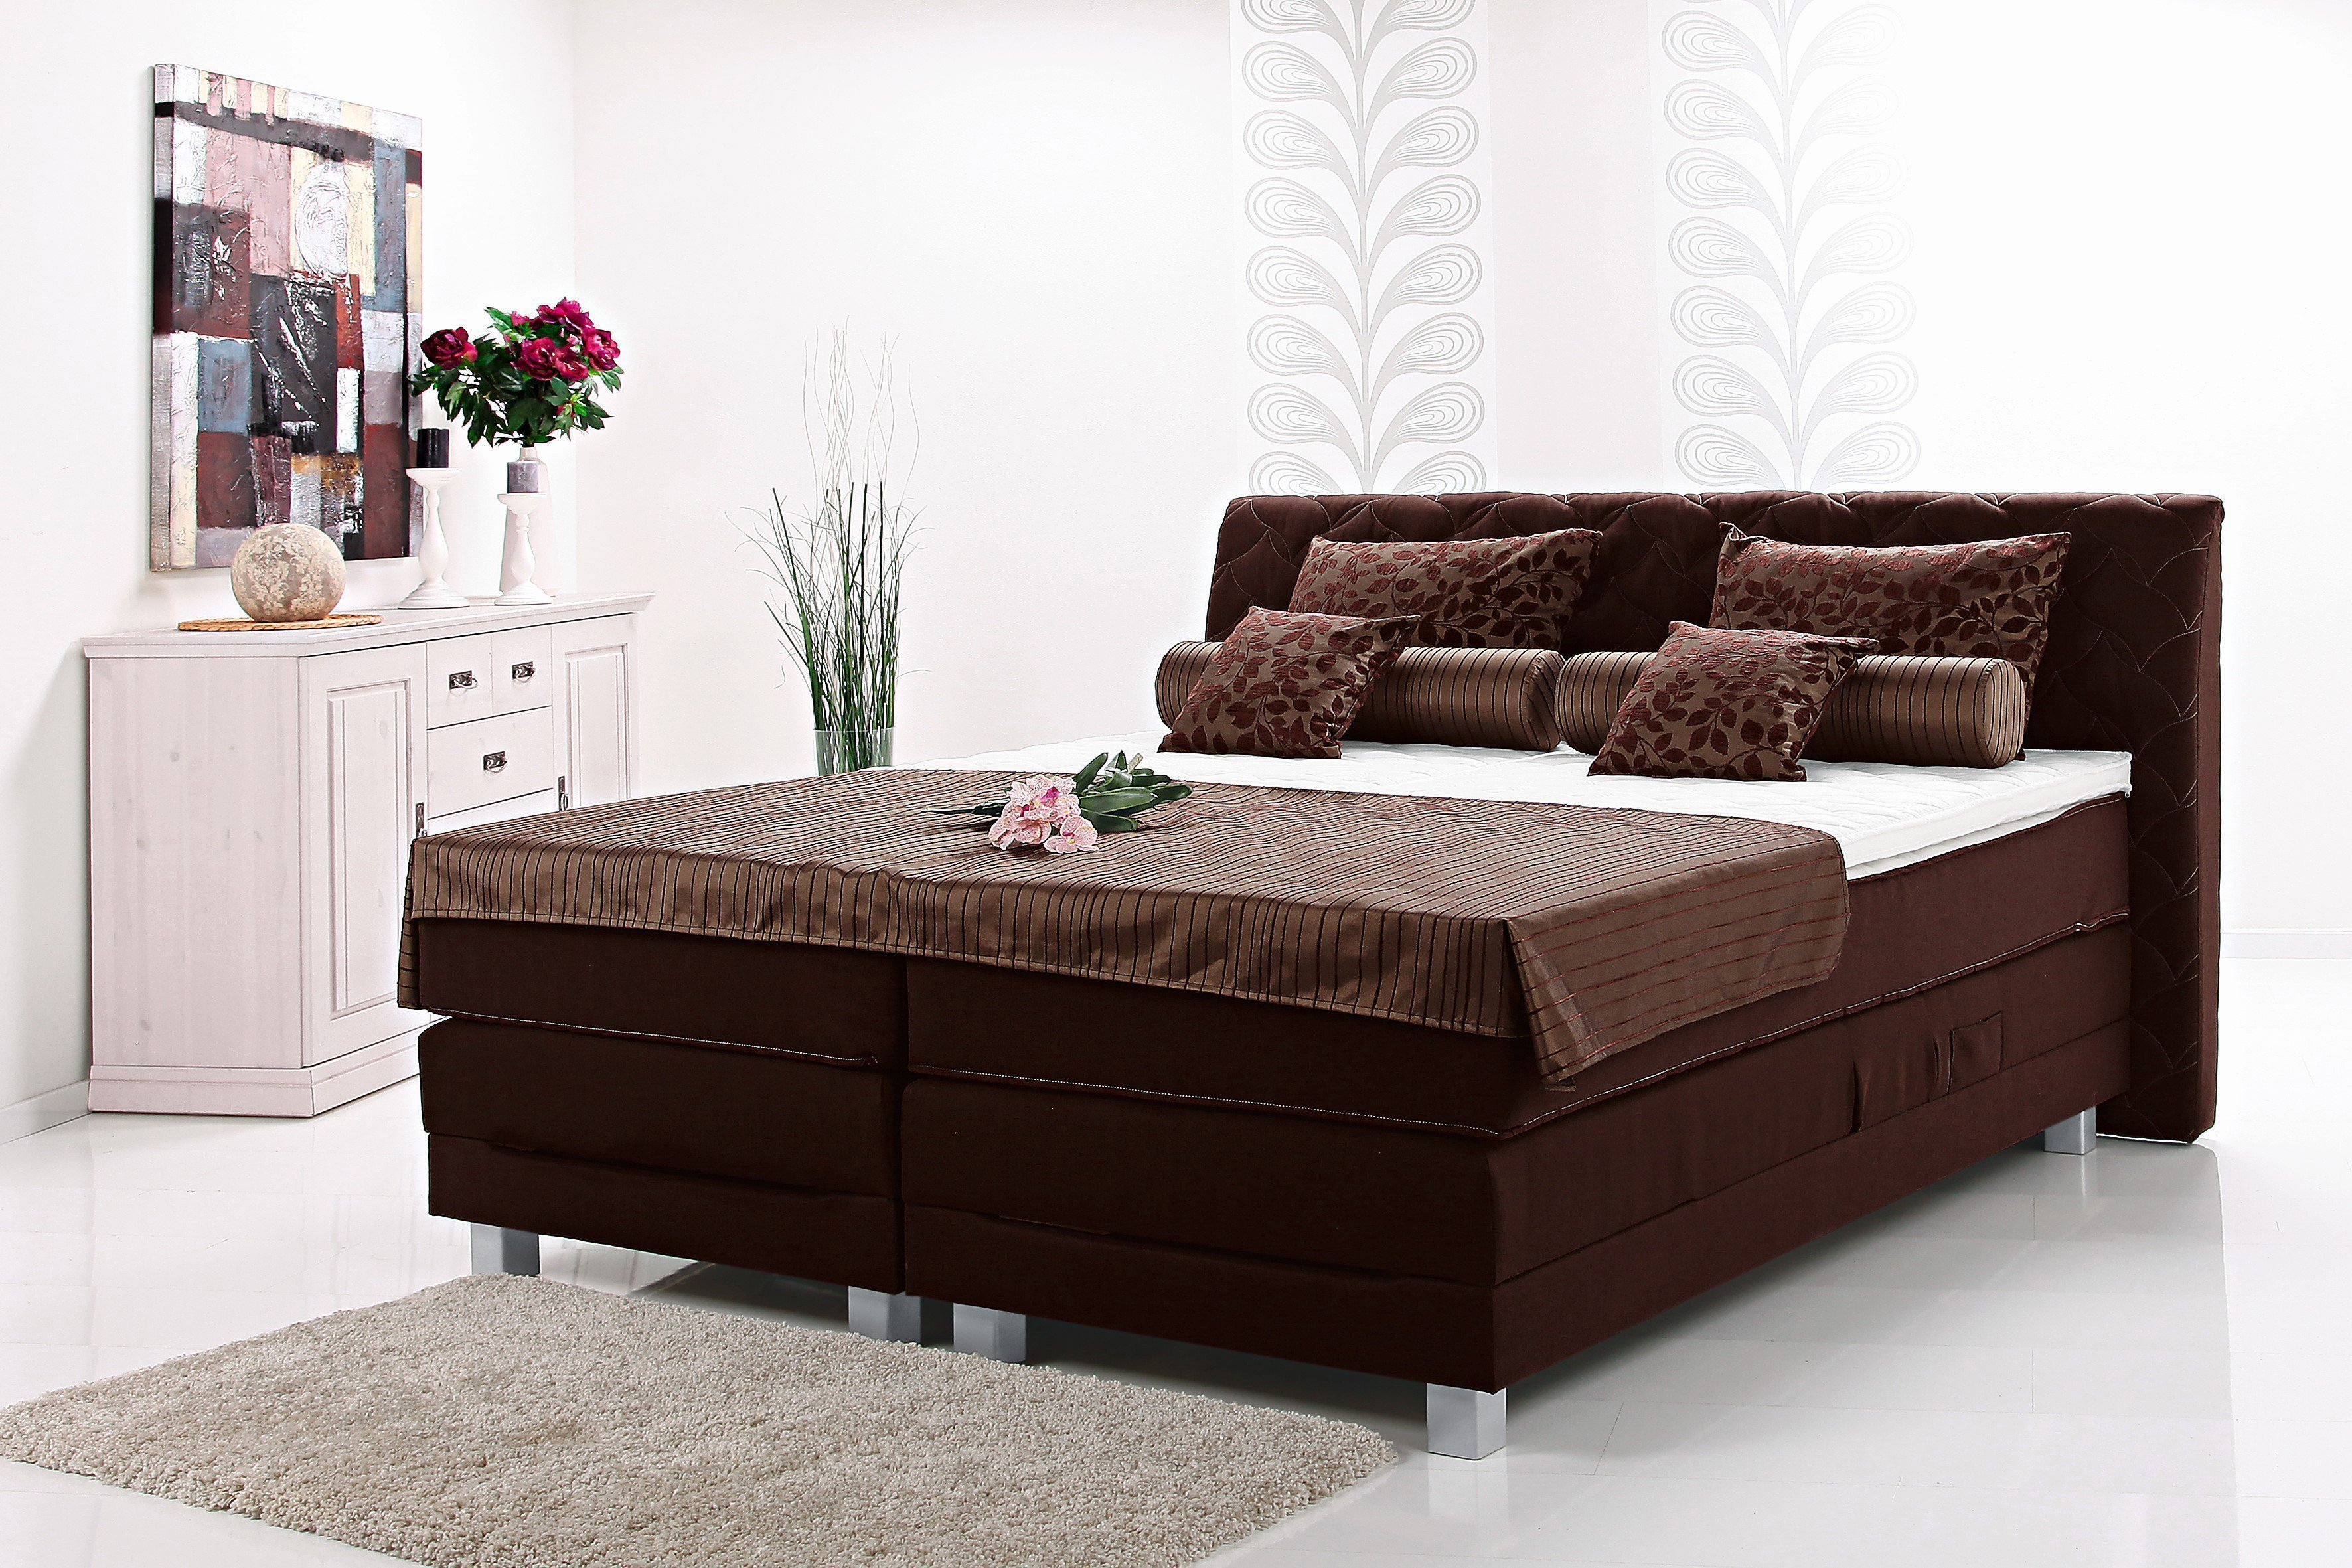 breckle boxspringbett rio merida in braun m bel letz ihr online shop. Black Bedroom Furniture Sets. Home Design Ideas